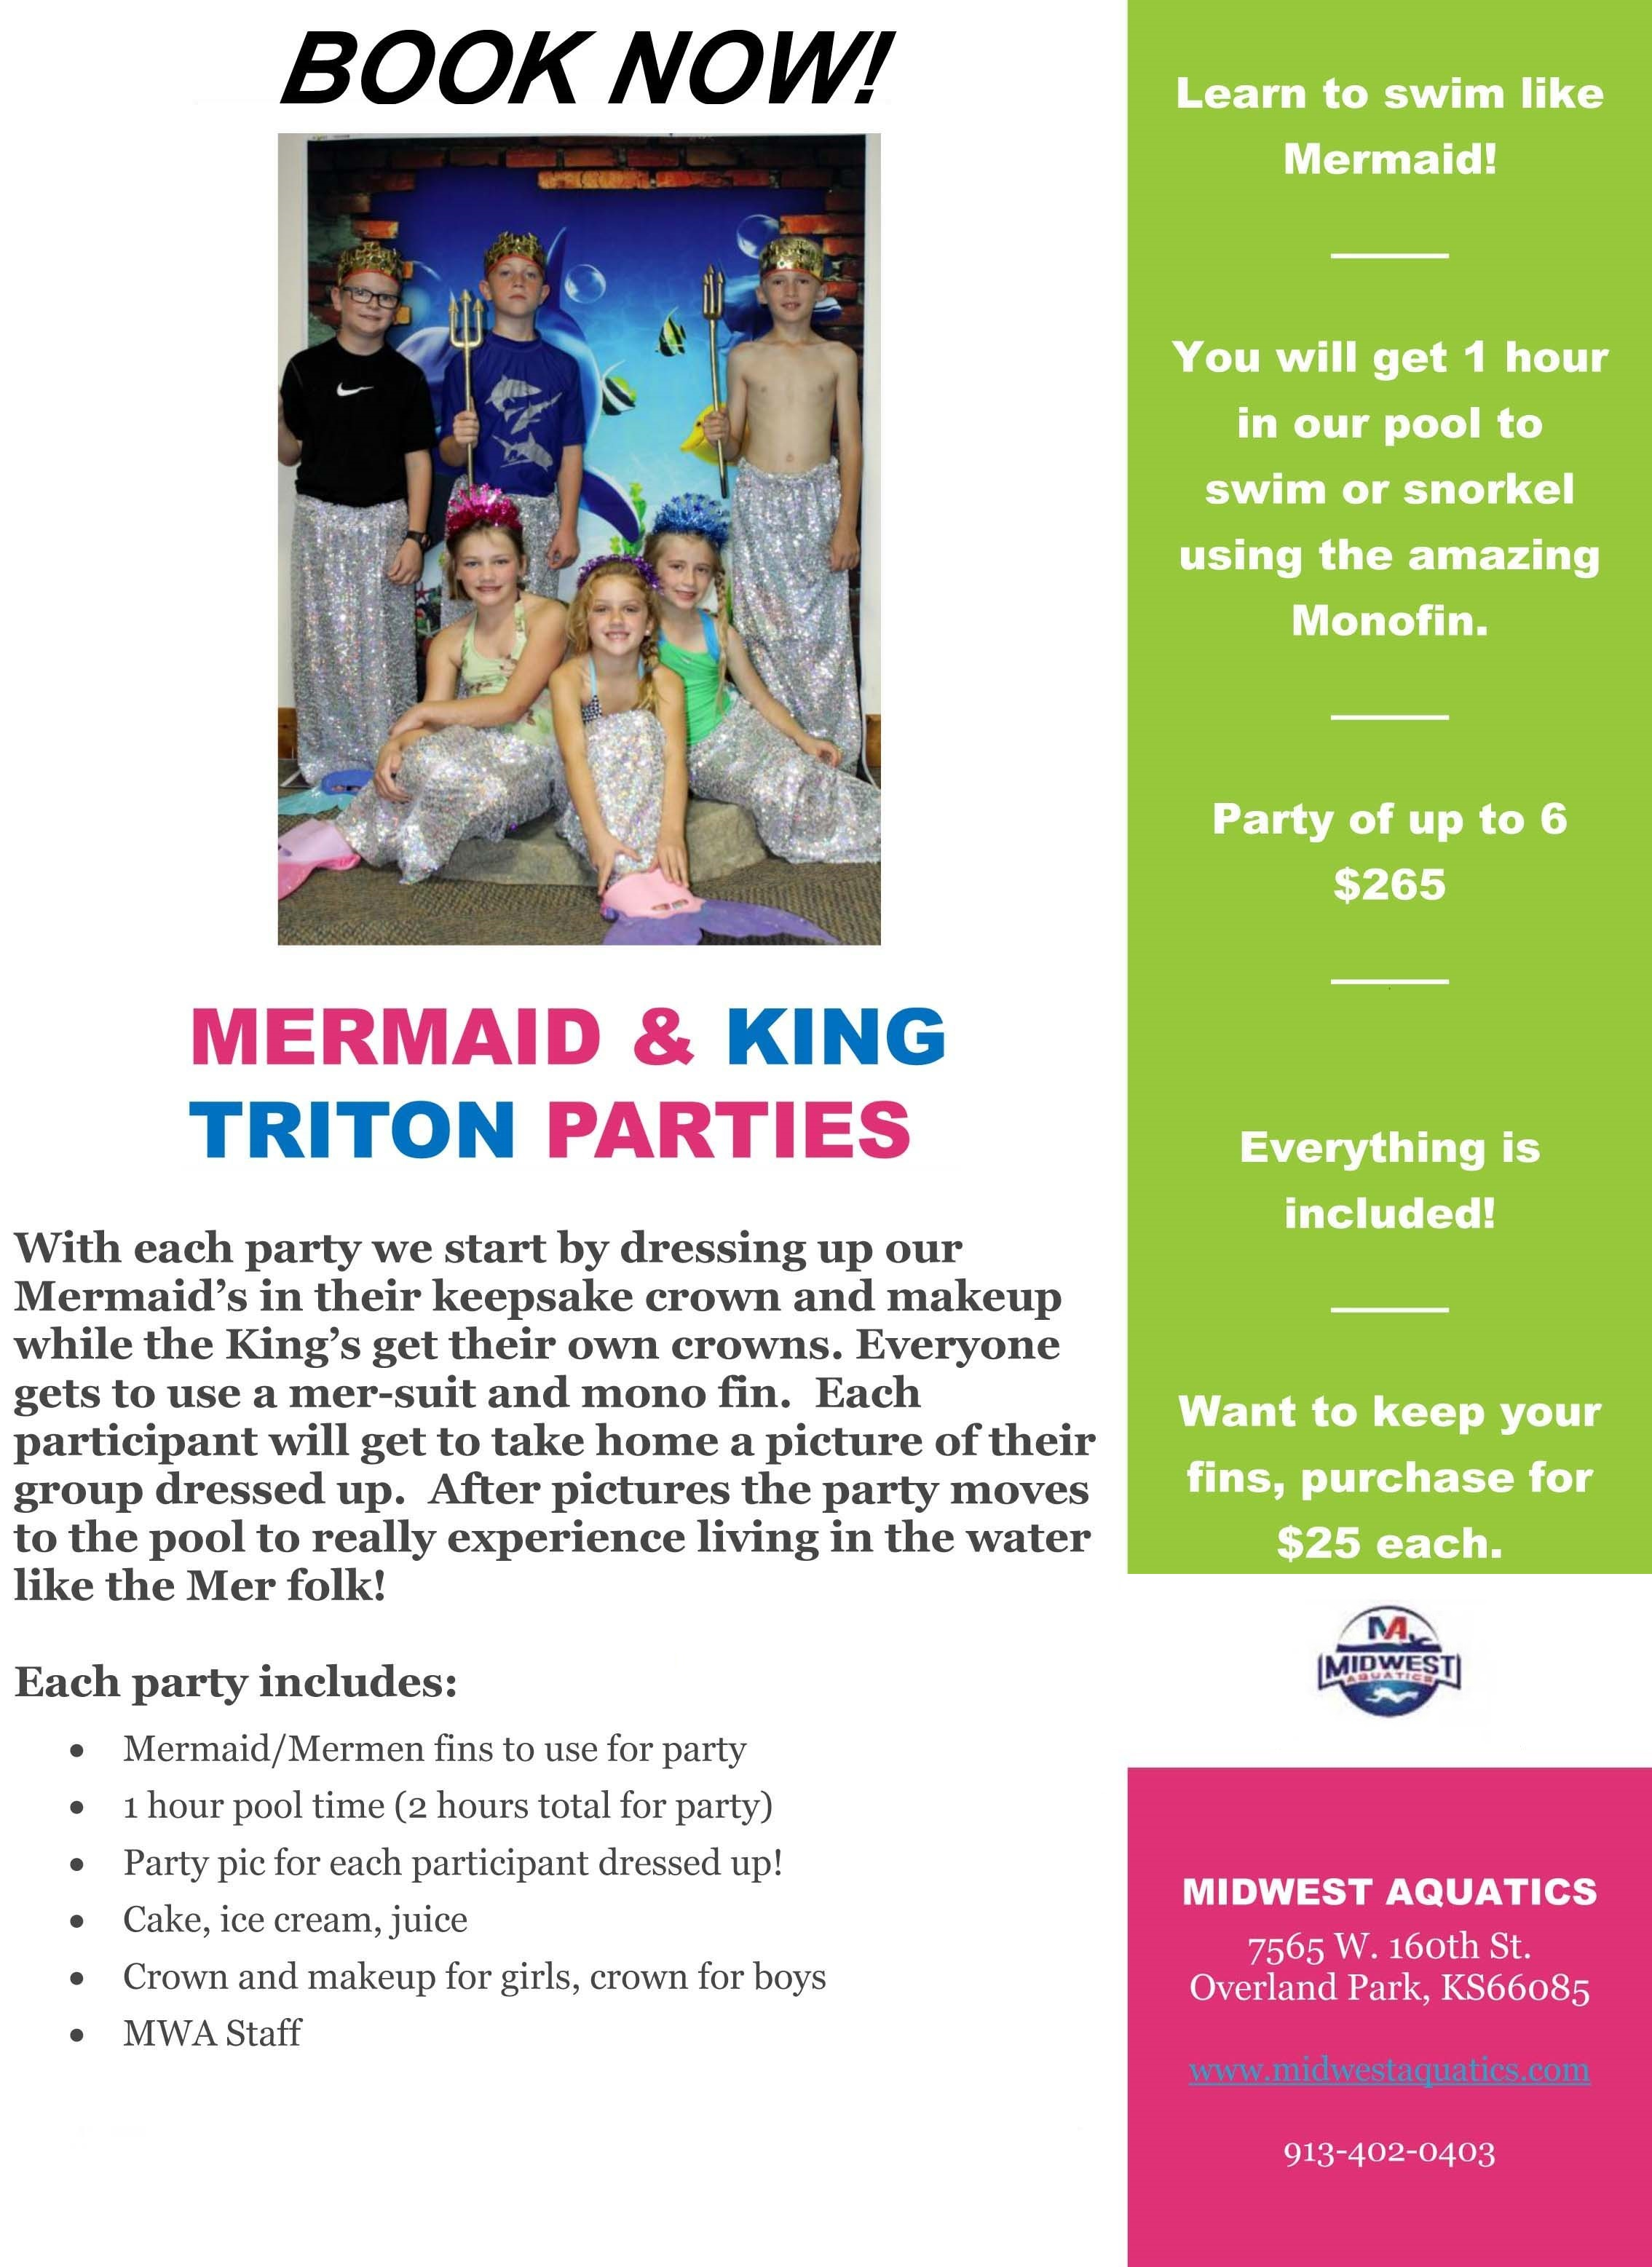 Mermaid and King Triton Party Flier